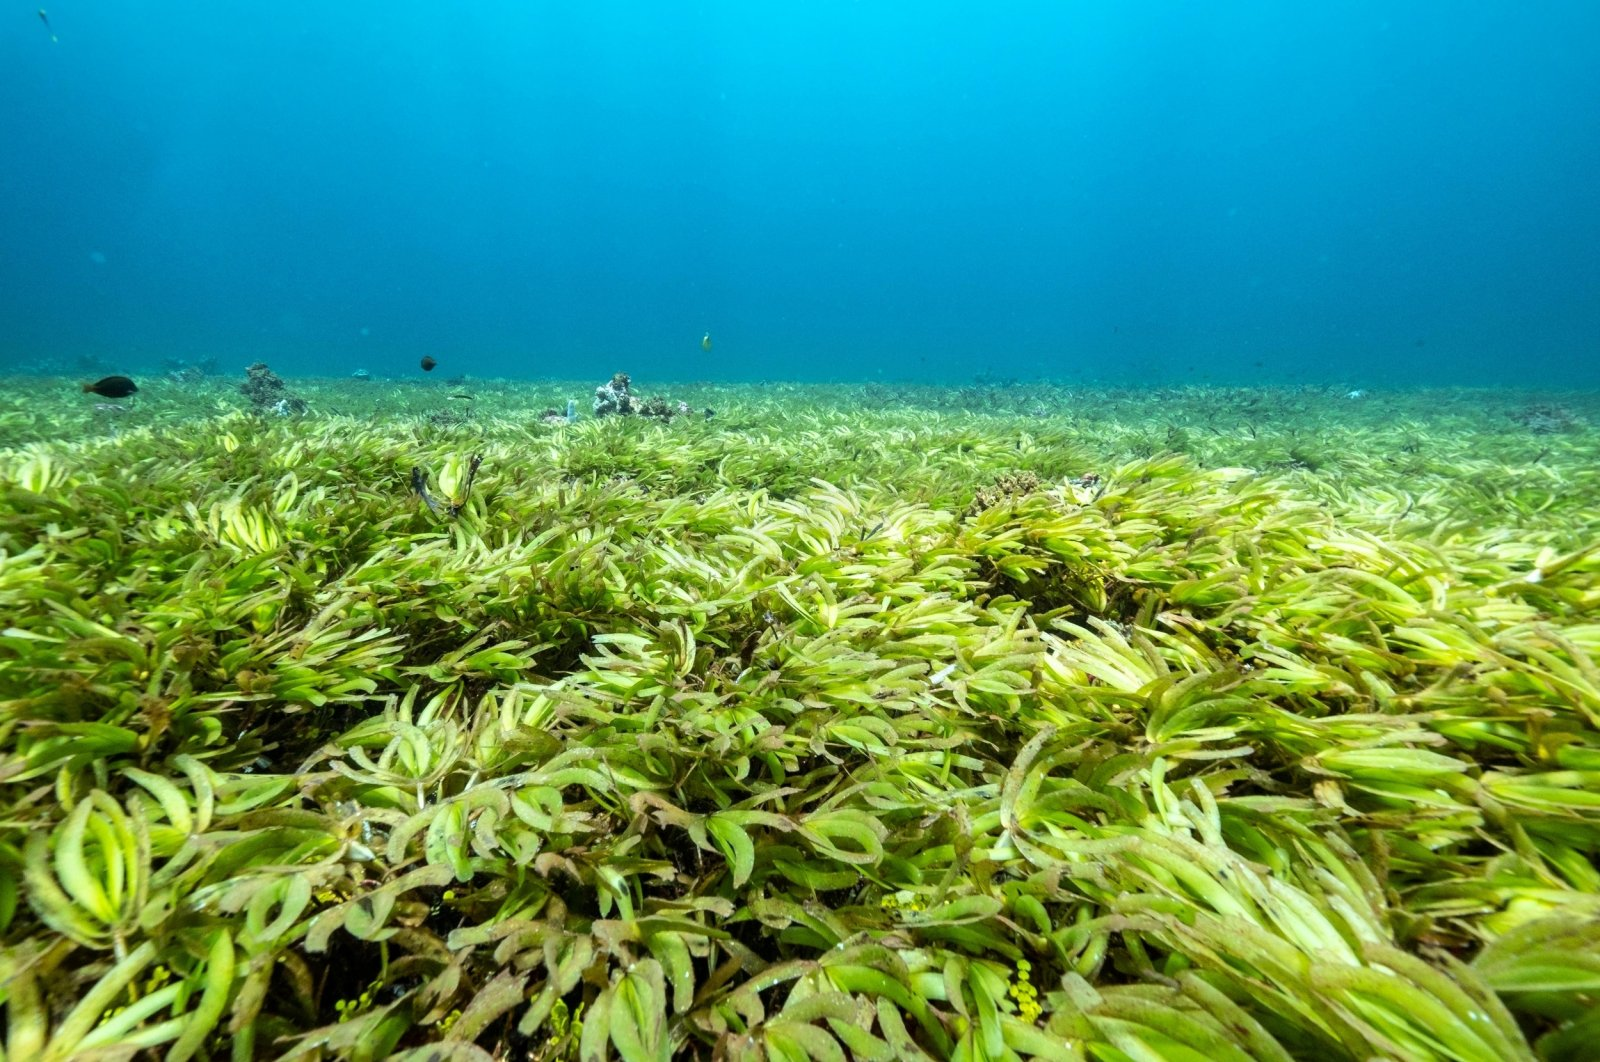 Seagrass in the Indian Ocean above the world's largest seagrass meadow and one of the biggest carbon sinks in the high seas, at the Saya de Malha Bank within the Mascarene plateau, Mauritius, March 20, 2021. (Tommy Trenchard/Greenpeace/Handout via Reuters)